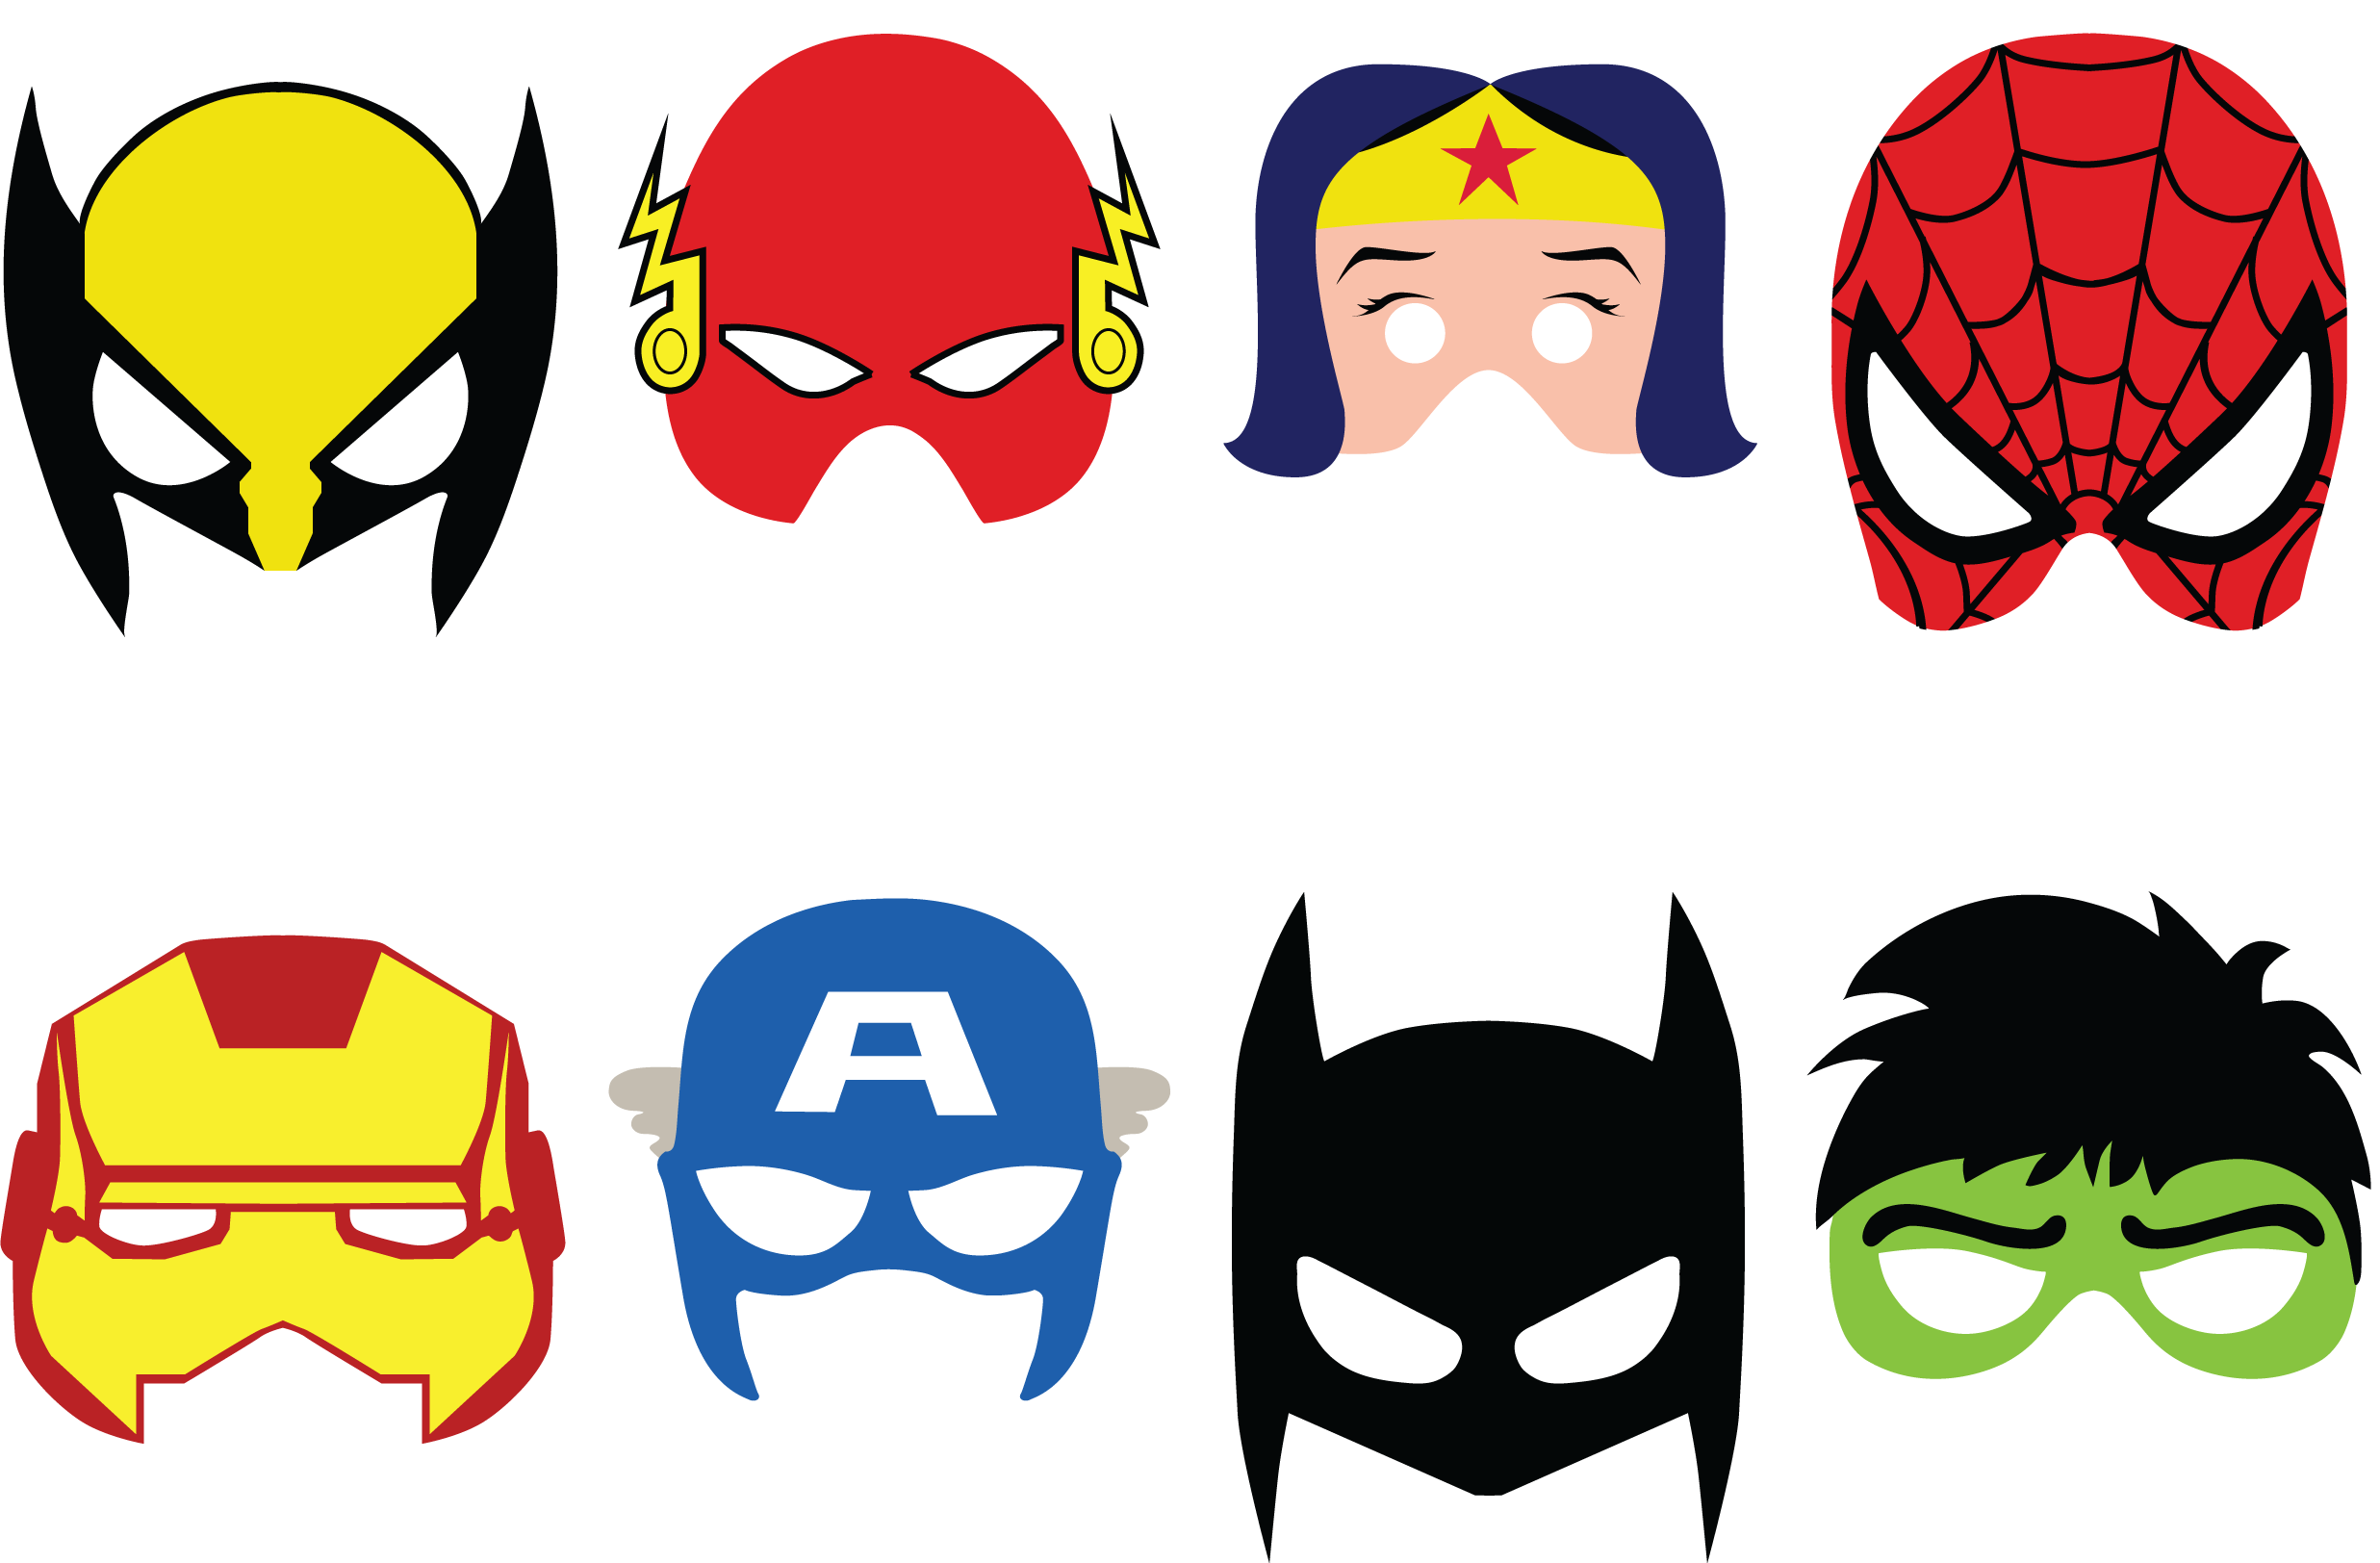 Halloween superheroes clipart freeuse library Pin by susana pereyra on FRAN | Pinterest freeuse library